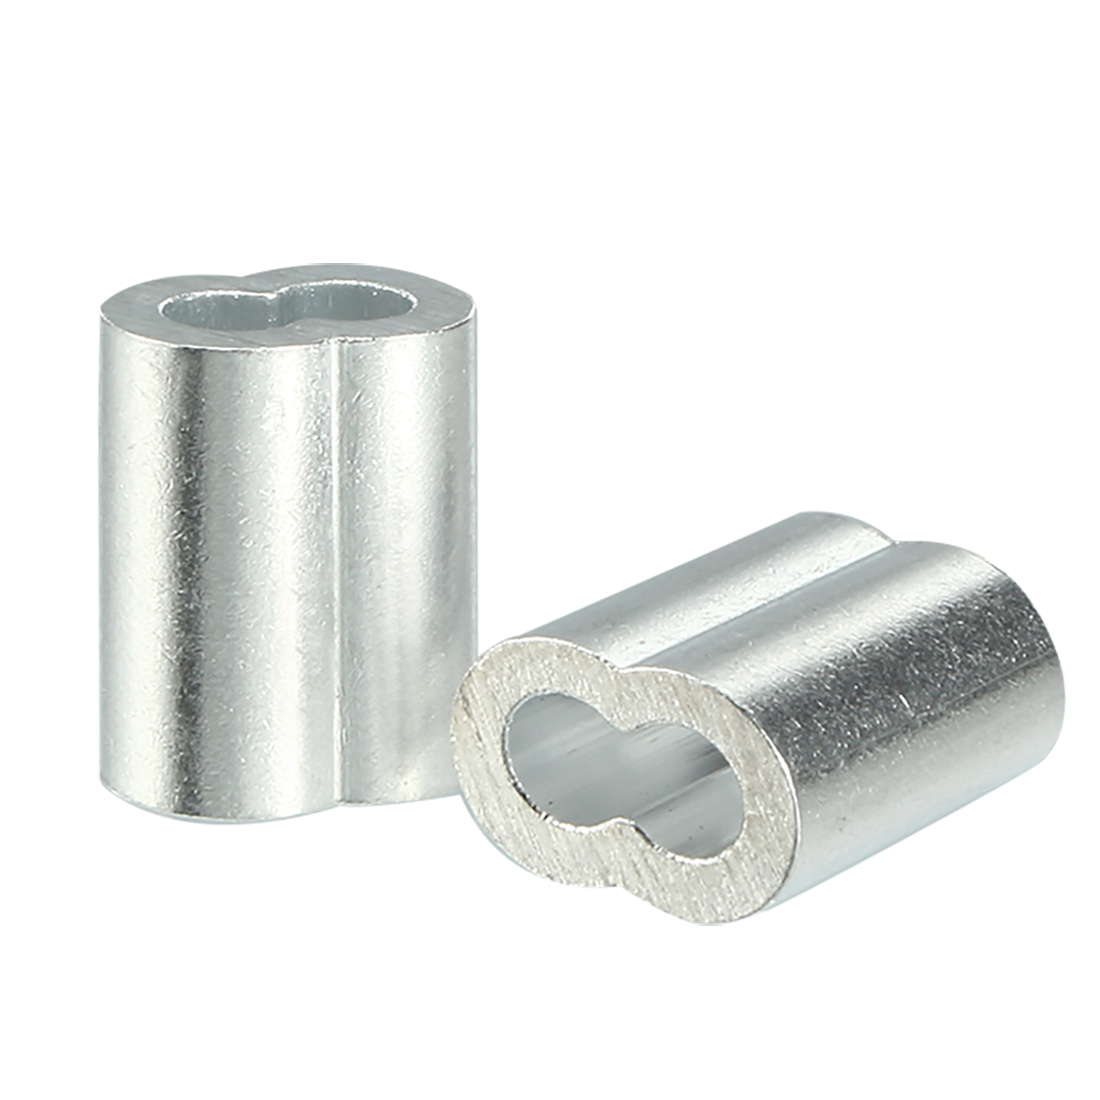 2mm 5/64-inch Cable Wire Rope Aluminum Sleeves Clip Crimping Loop 100pcs